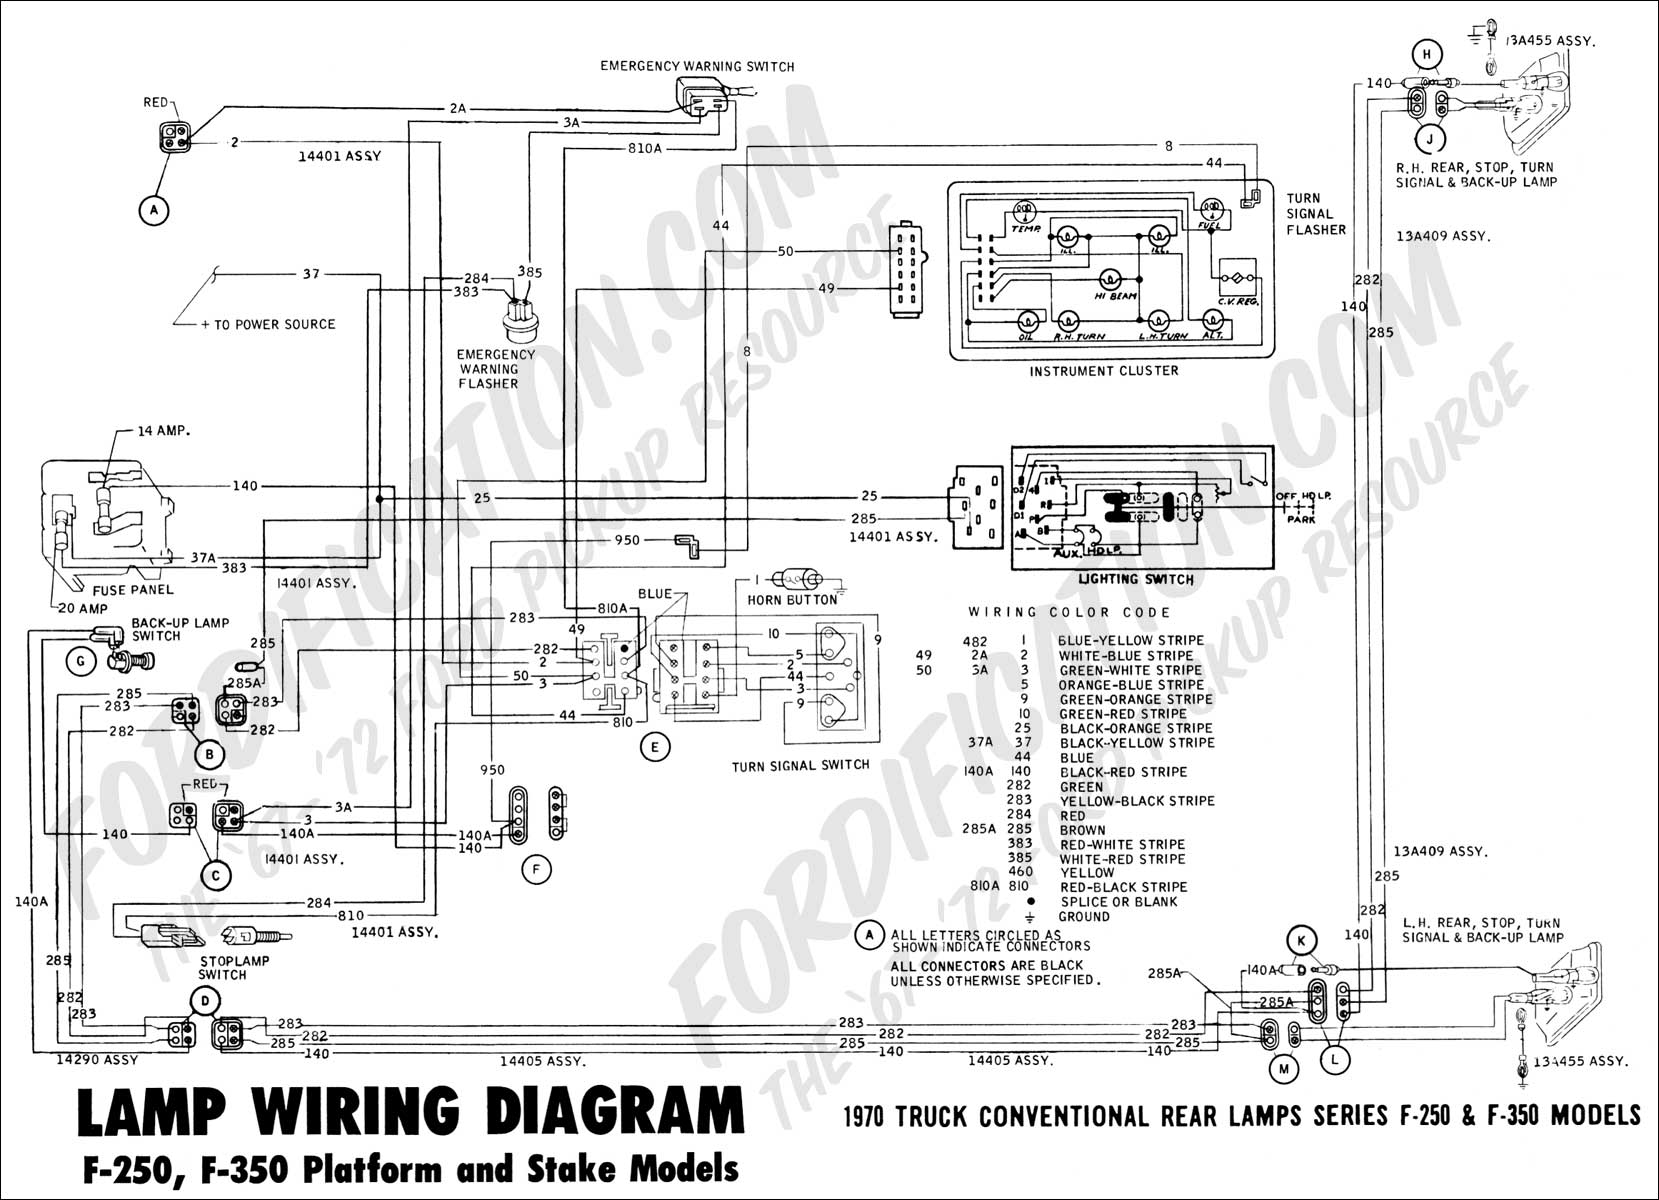 hight resolution of 2005 ford f 250 dash wiring harness wiring diagram expert 2005 f250 power window wiring diagram 2005 f250 wiring diagram